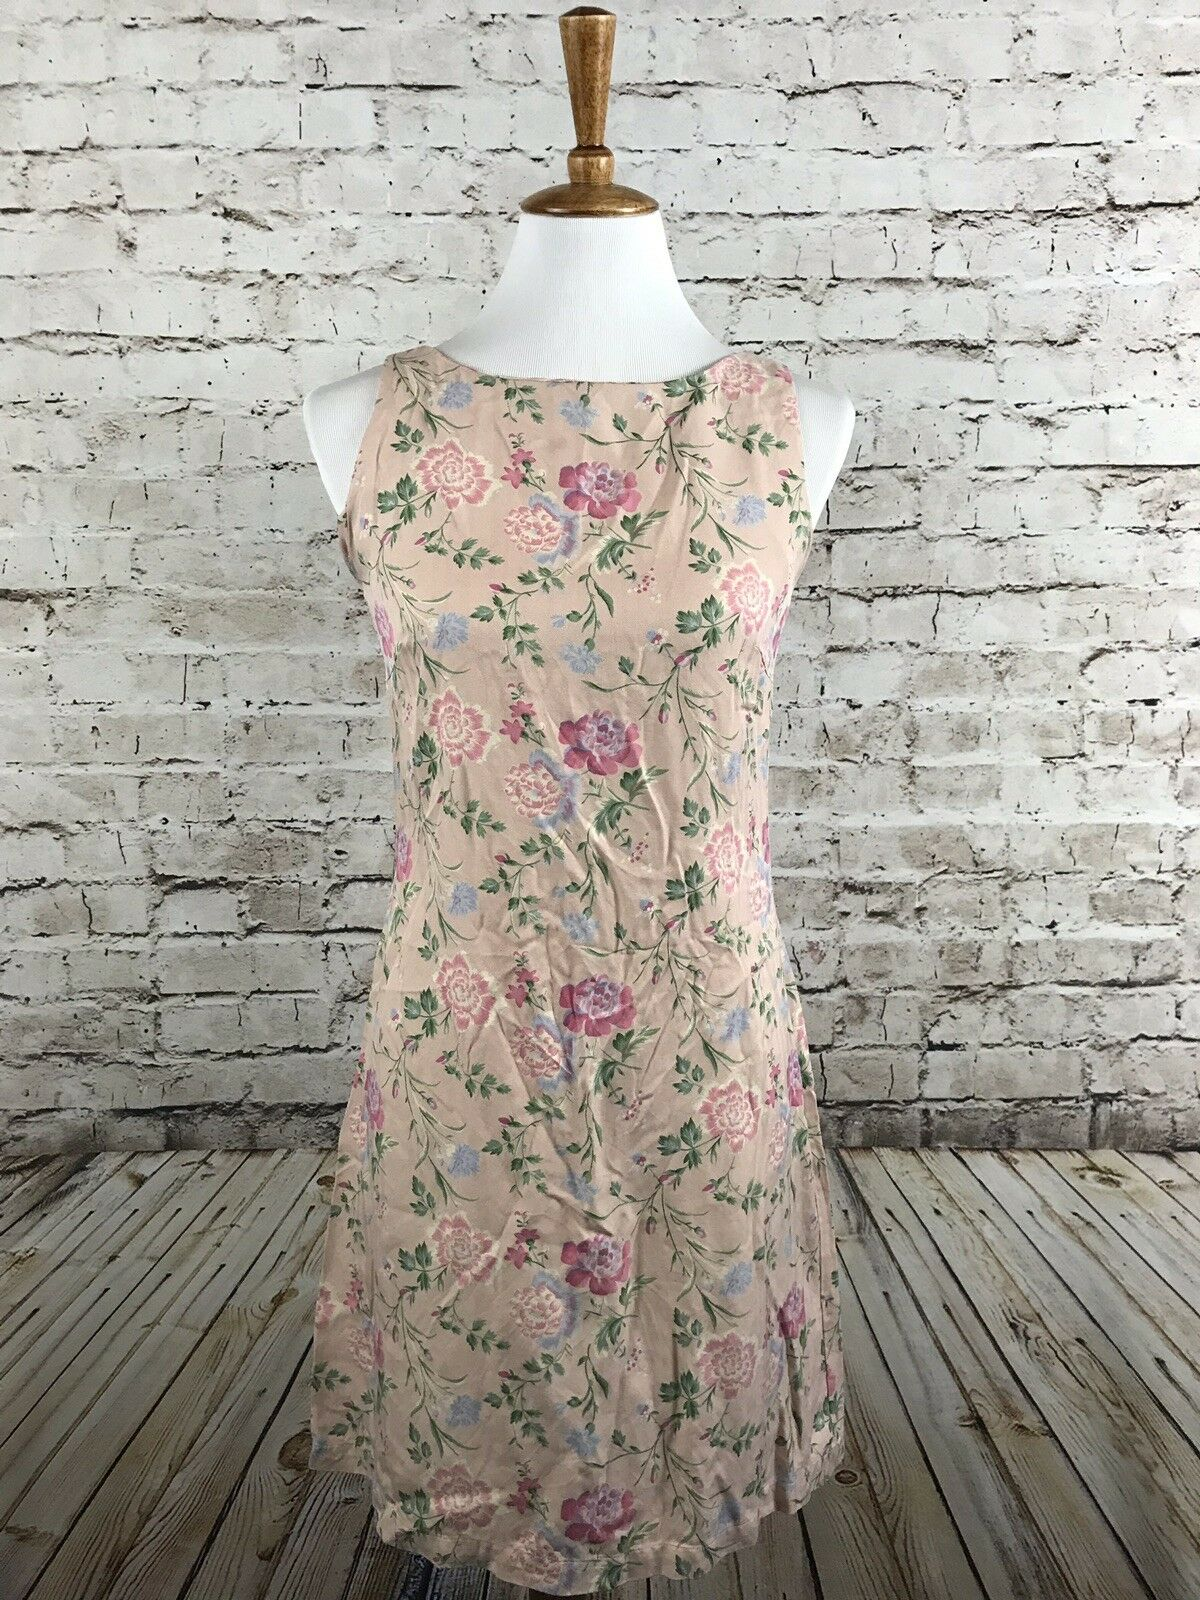 Vintage April Cornell Silk Sheath Dress Pink Floral Print Size 2